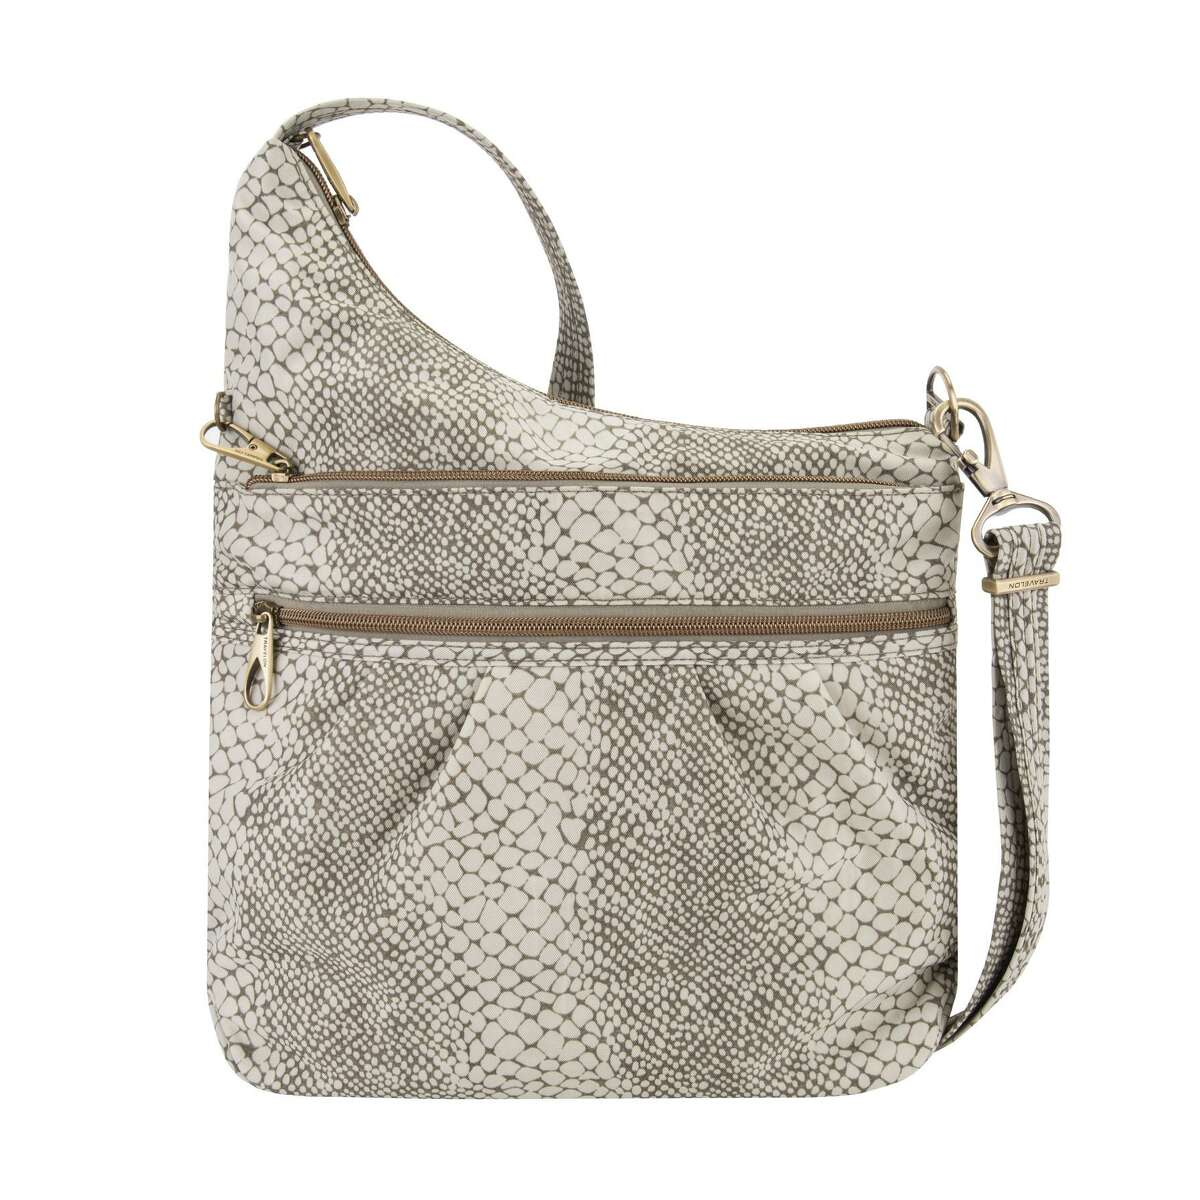 Travelon's new snakeprint bags provide a fun and neutral color with the safety features that we've come to expect from Travelon, including slash-resistant fabric and straps and RFID protection for credit cards. This crossbody design has plenty of zippered pockets for easy organization.